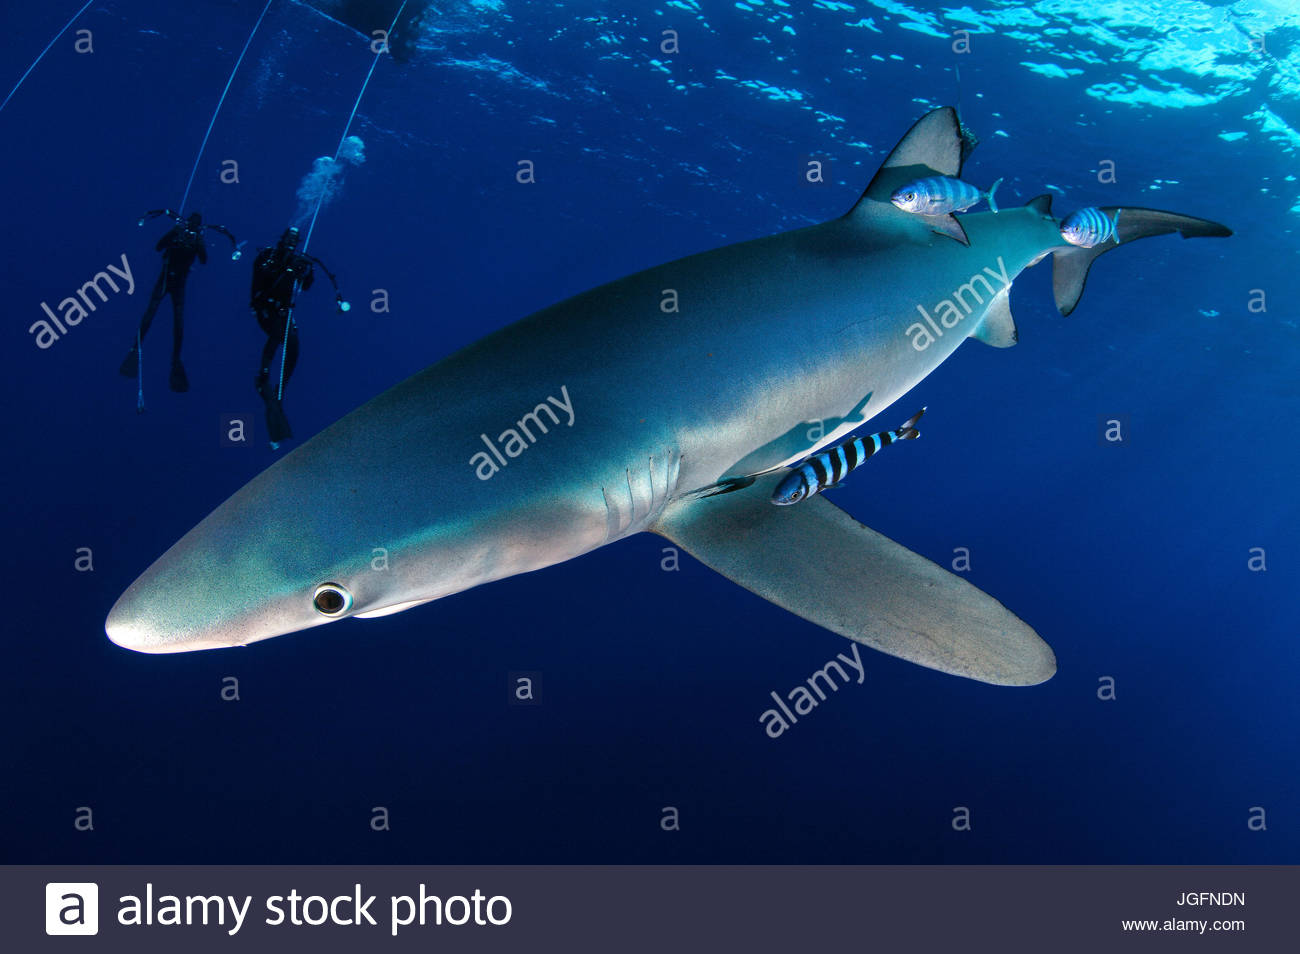 A blue shark accompanied by pilot fish.  Two scuba divers are seen in the distance. - Stock Image